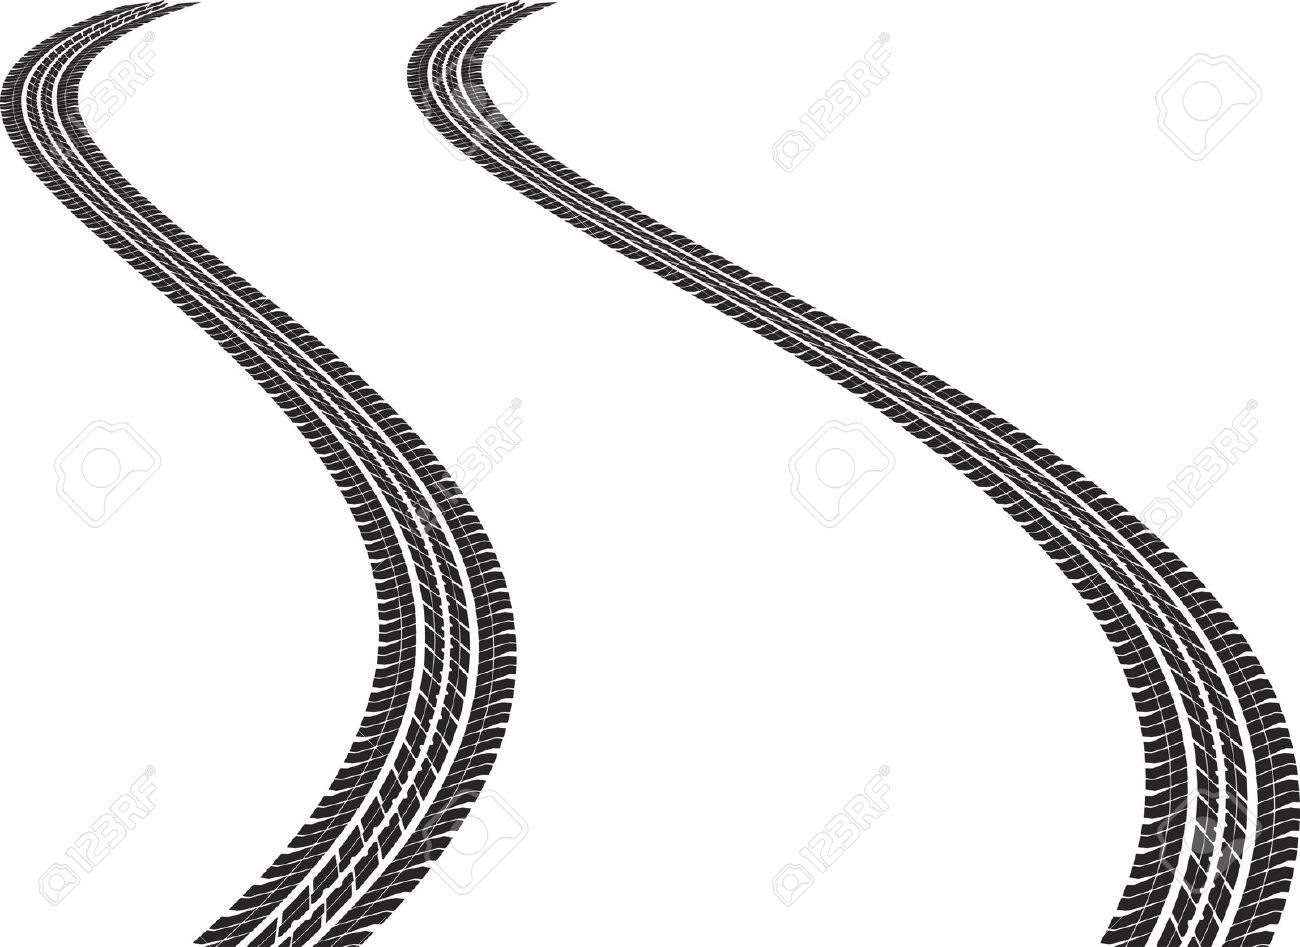 Clip Art Illustration Of Tire Tracks Royalty Free Cliparts.